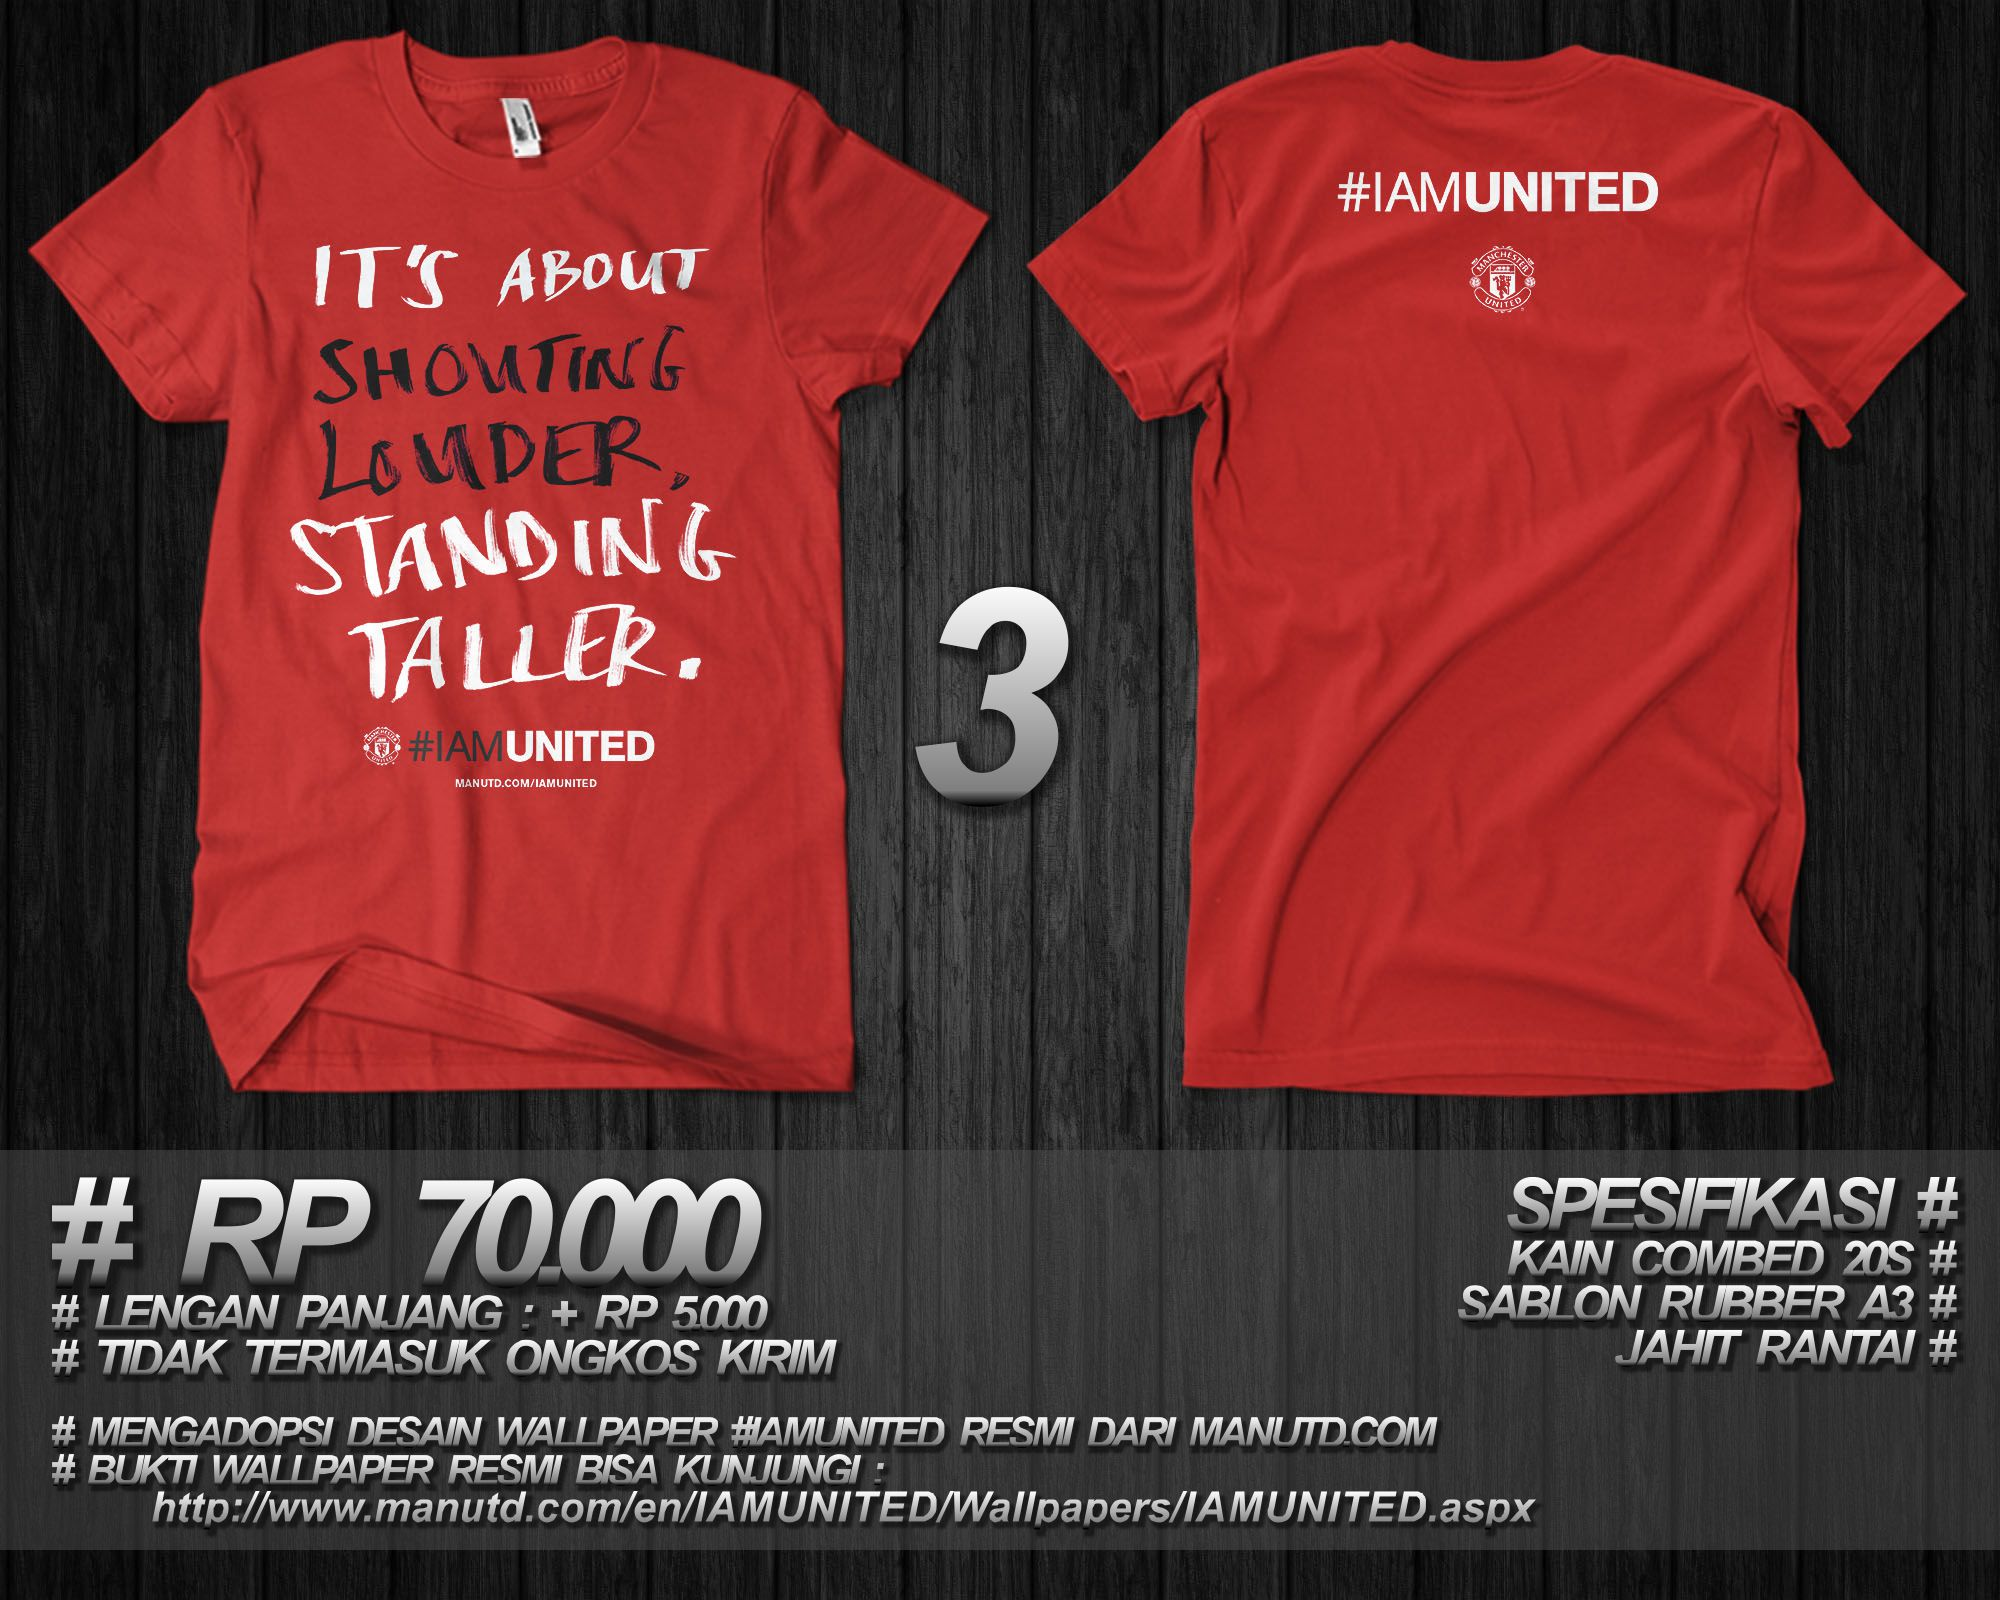 (PRE-ORDER) OFFICIAL #IAMUNITED WALLPAPER ADOPTED ON T-SHIRT (JOGJA)